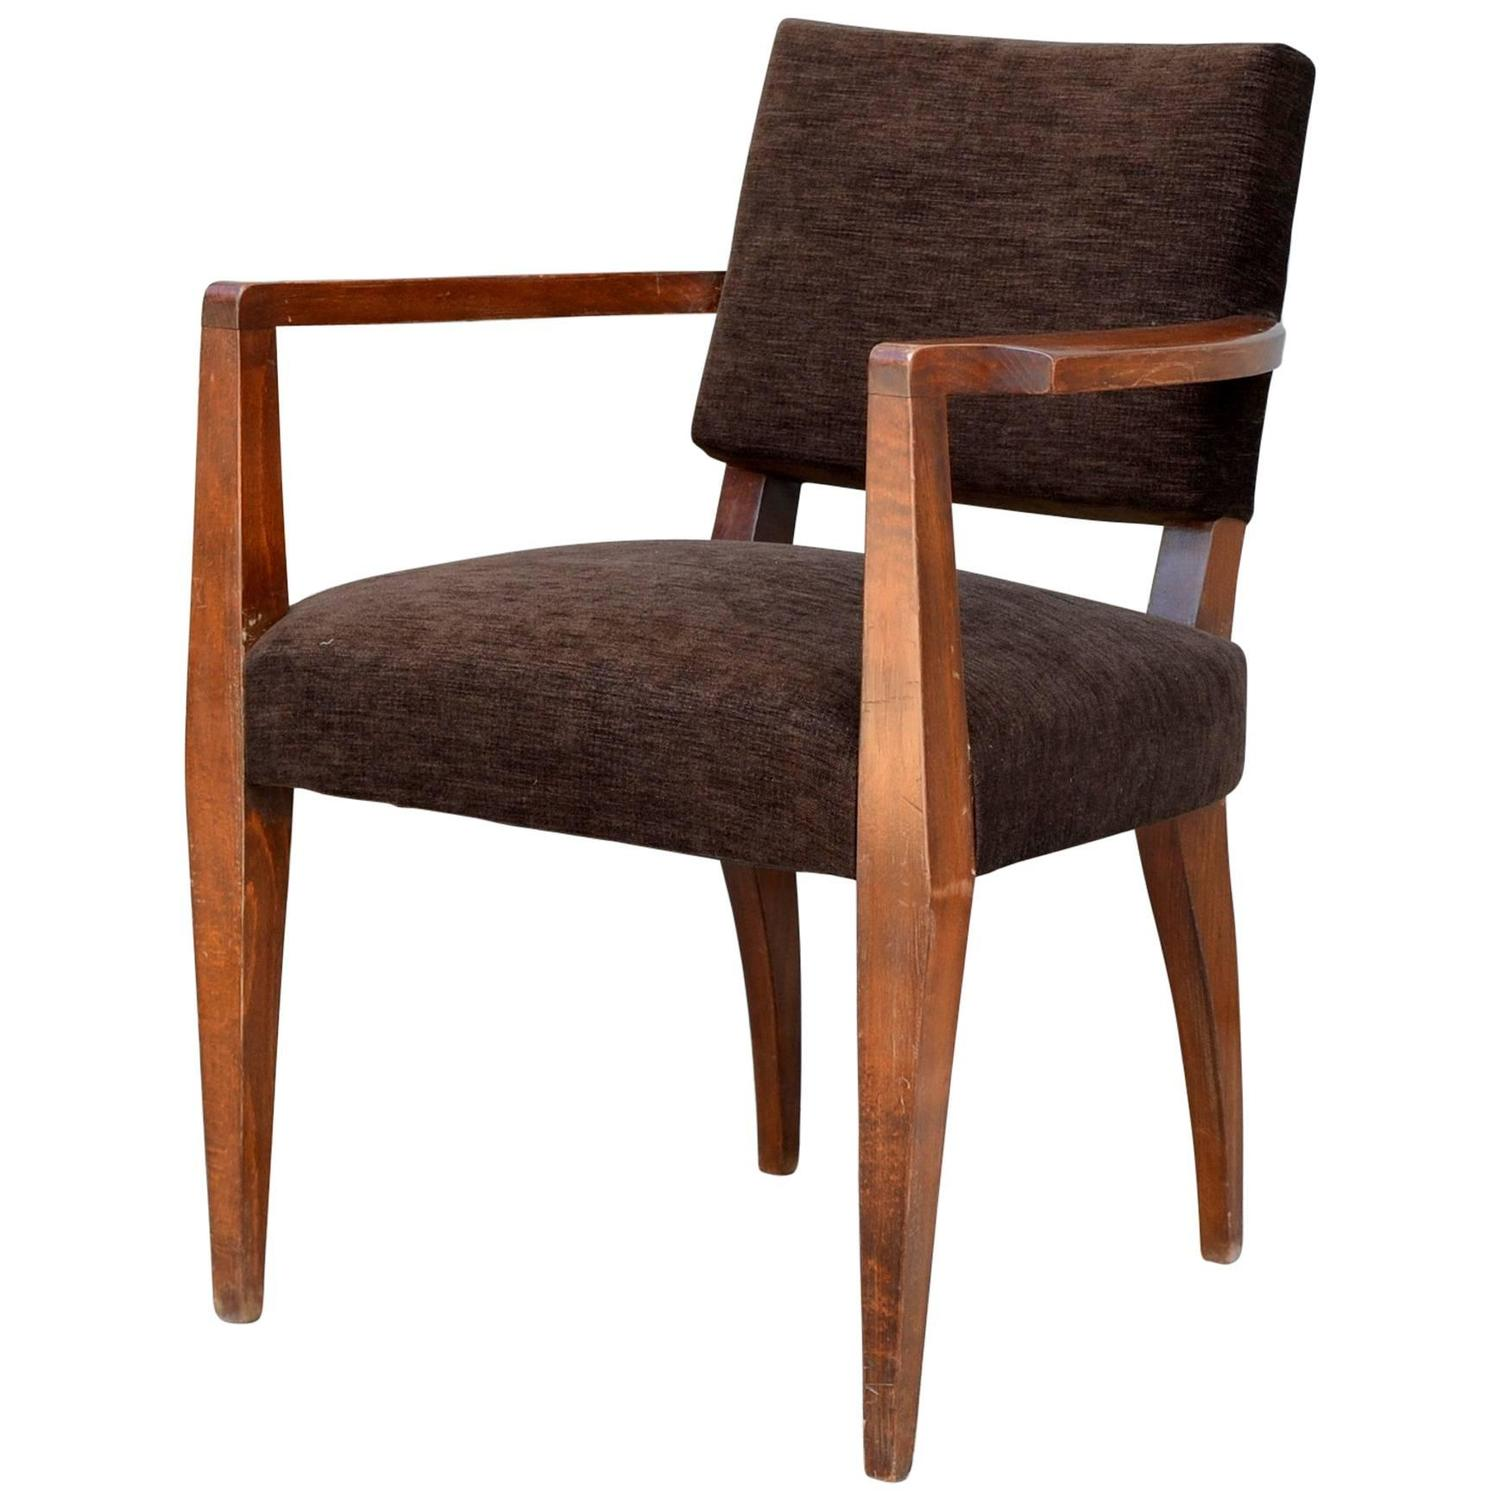 Chic French Art Deco Single Bridge Armchair For Sale at ...